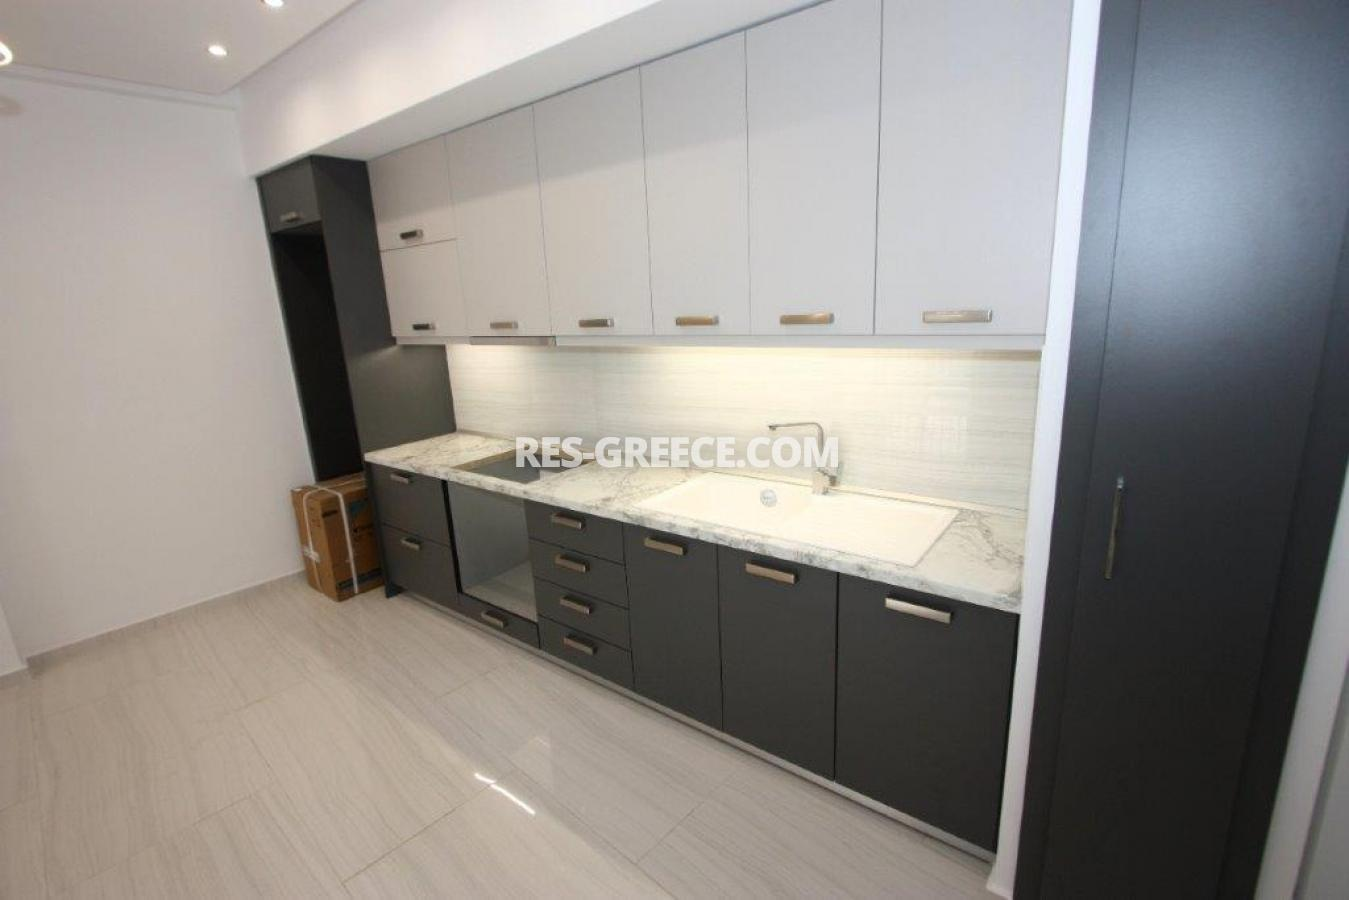 Poli 21, Central Macedonia, Greece - Apartment for residence or for long term rent - Photo 4